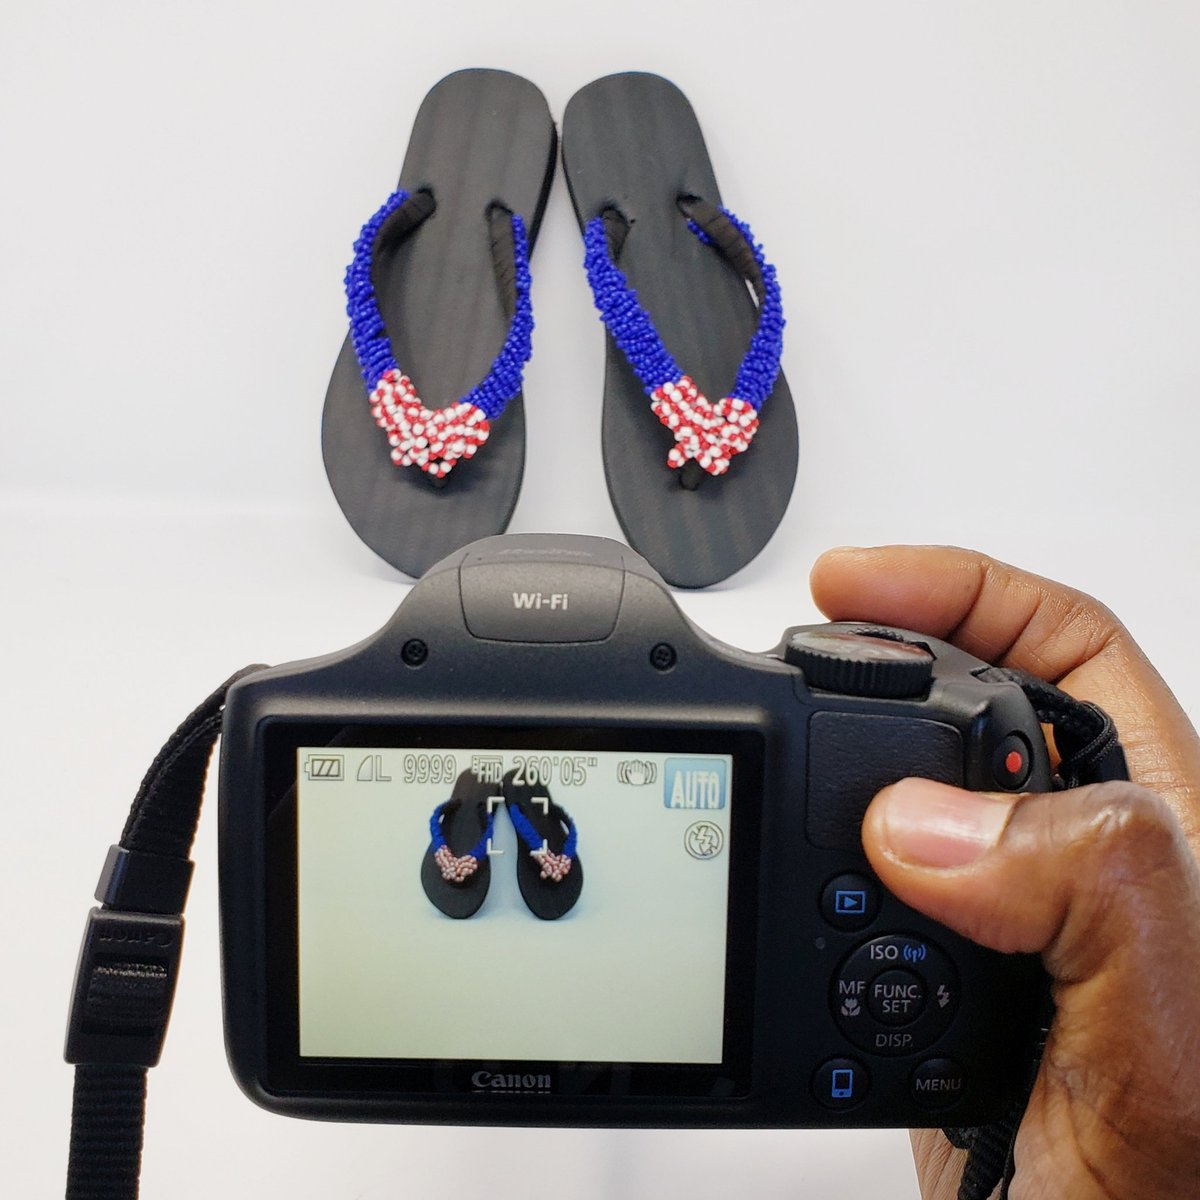 I spy with my little eye..... #photoshoot   P.S: These 'flops will be listed in the shop within the next week or two.....  #behindthescenes #keepinitreal #InnateExpressions #handmade #unique #flipflops #smallbusiness   #femaleentrepreneur #solopreneur #entrepreneurlifepic.twitter.com/xtnFPH7LqS – at Alexandria, VA